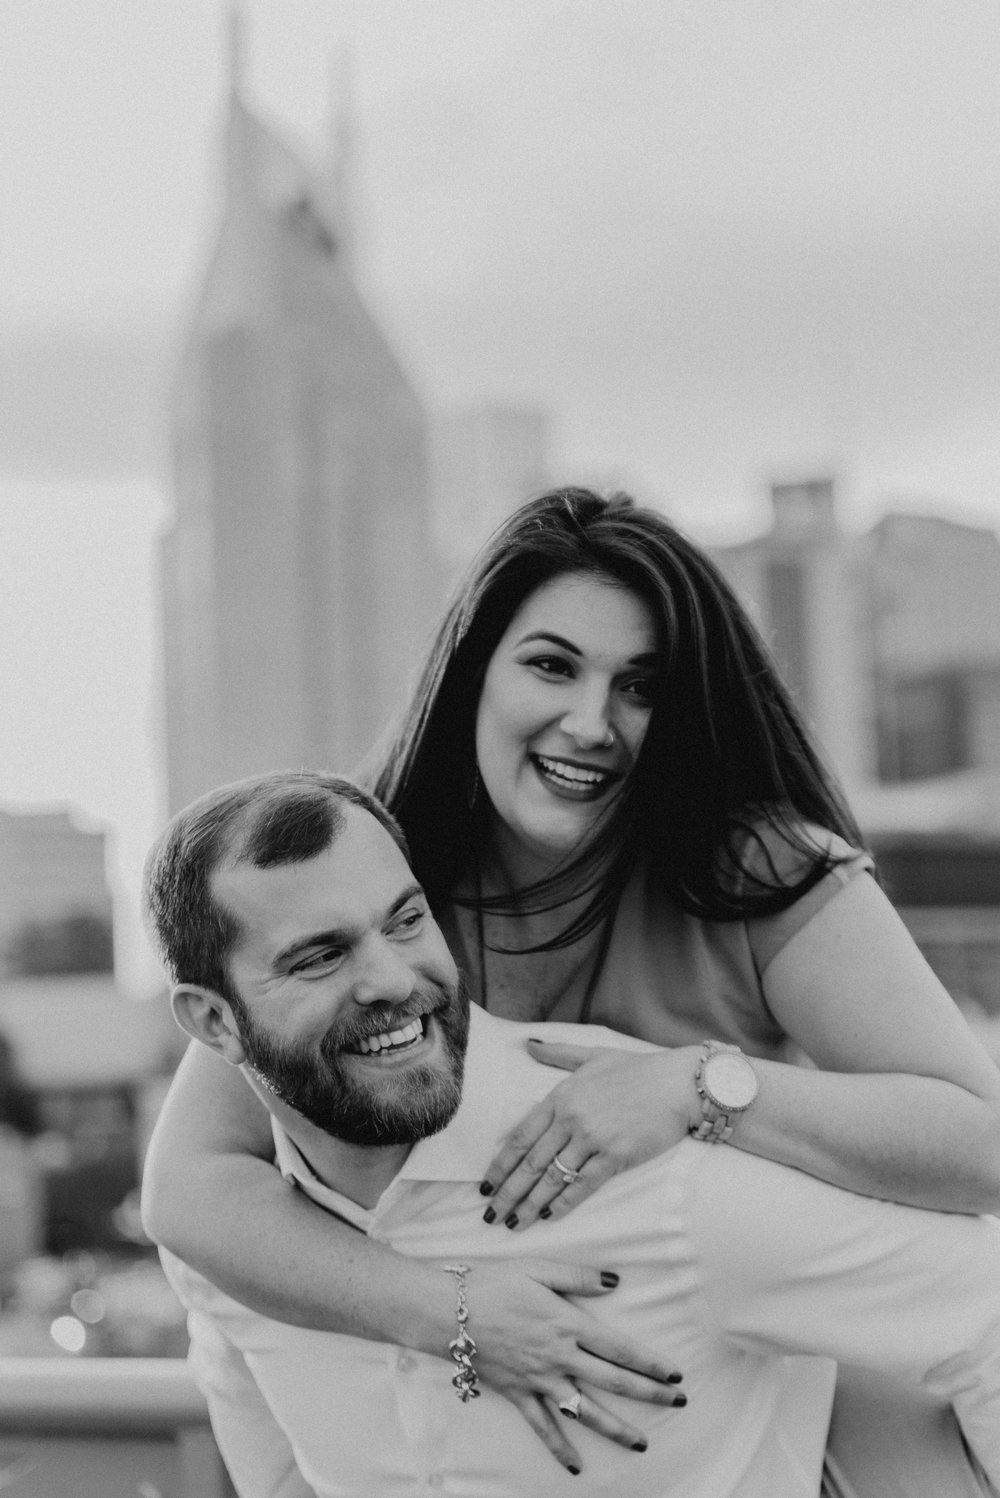 jaime jon nashville engagement session wilde company-2710.jpg